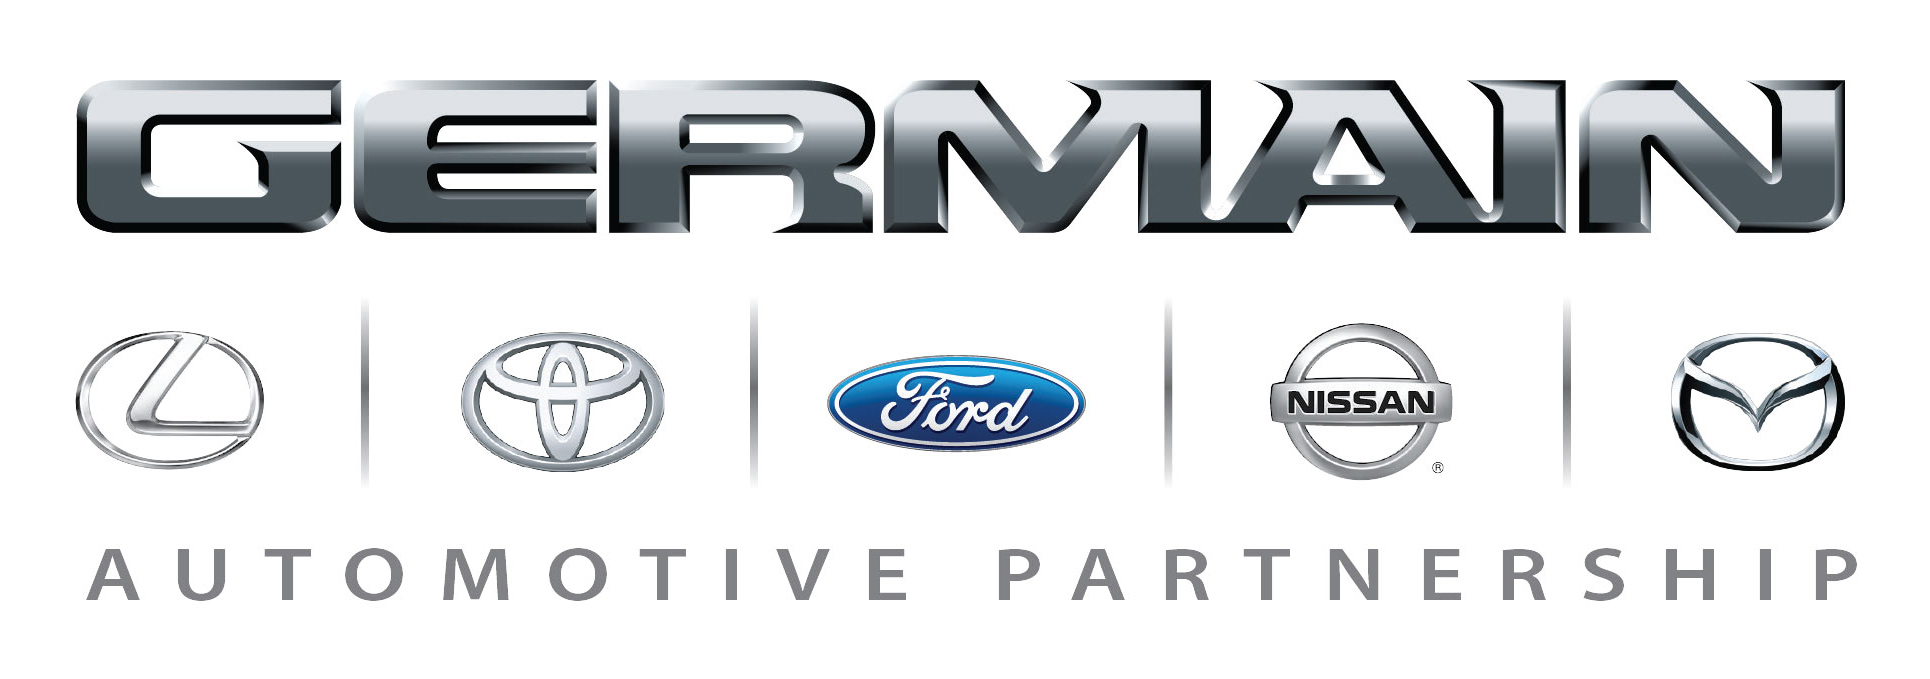 Germain Automotive